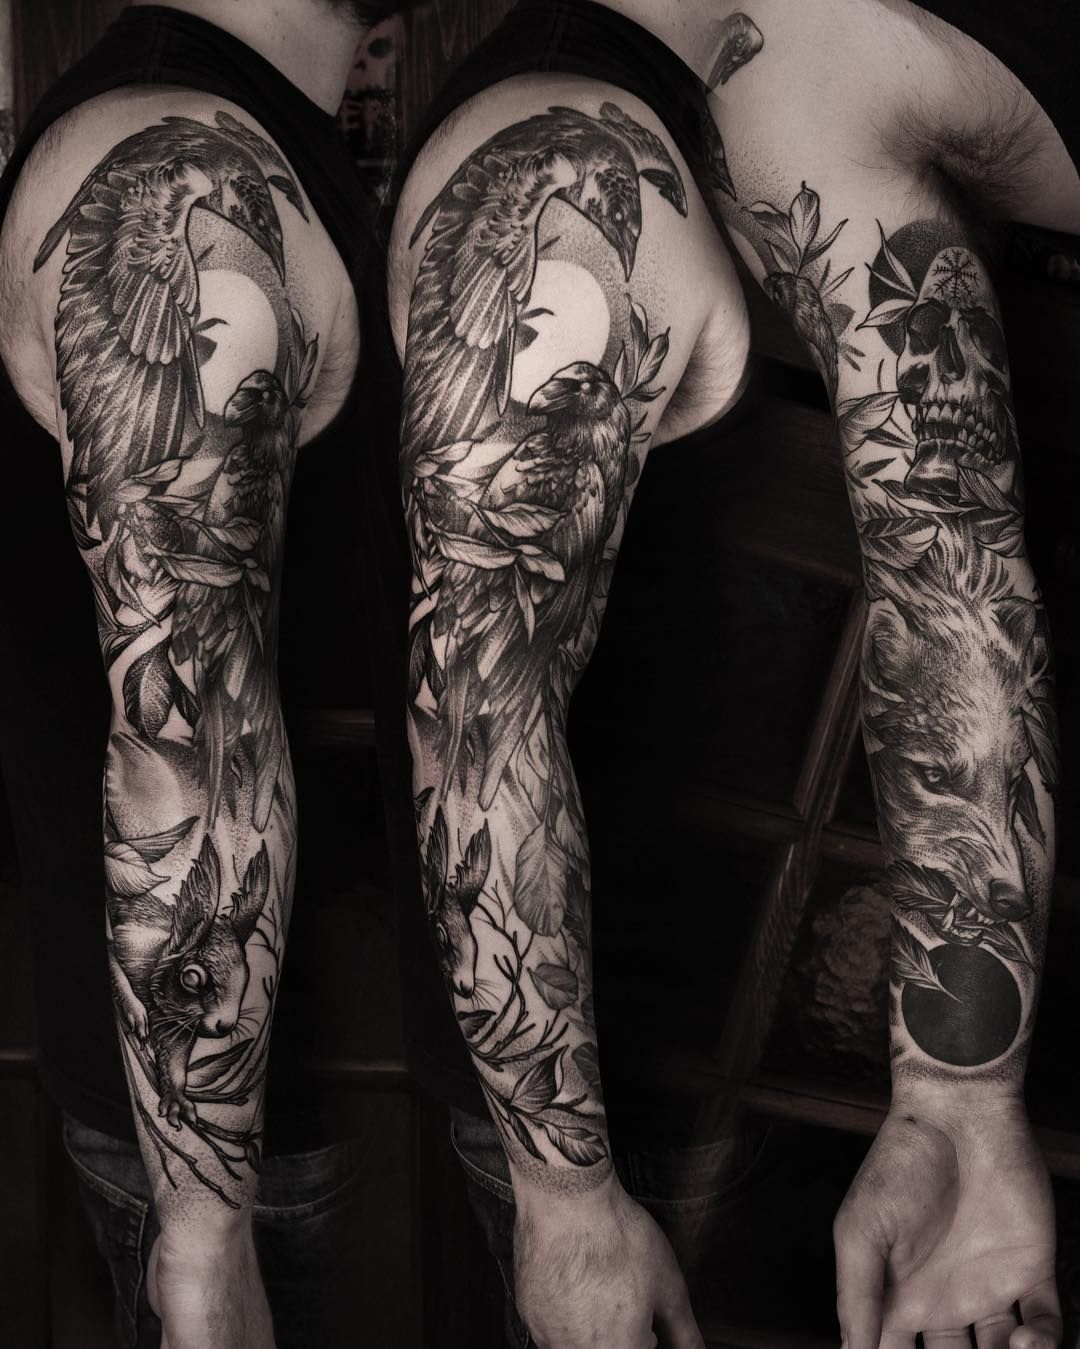 50 Bamboo Tattoo Designs For Men: Black Raven Tattoos - 55 Best Ideas For You (2019)